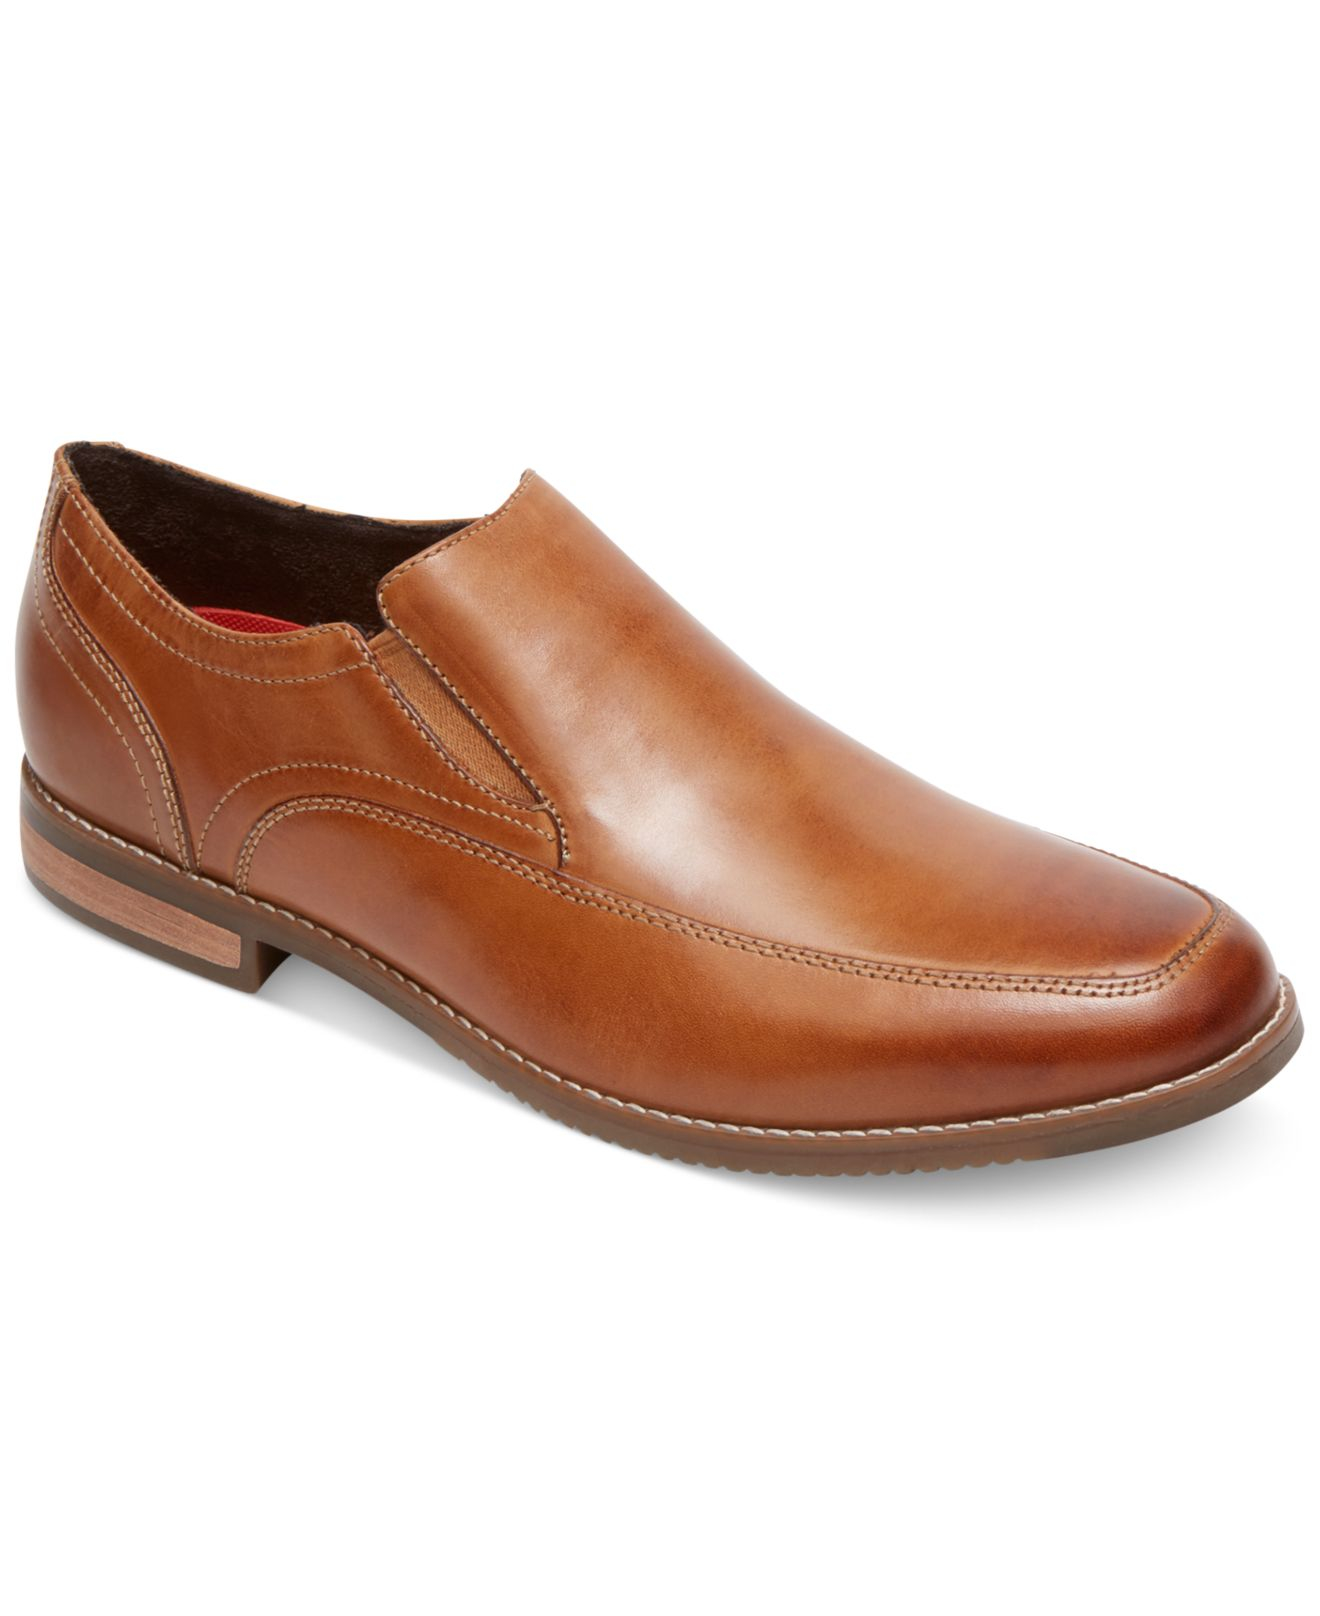 Rockport Stylepurpose Loafers in Brown for Men